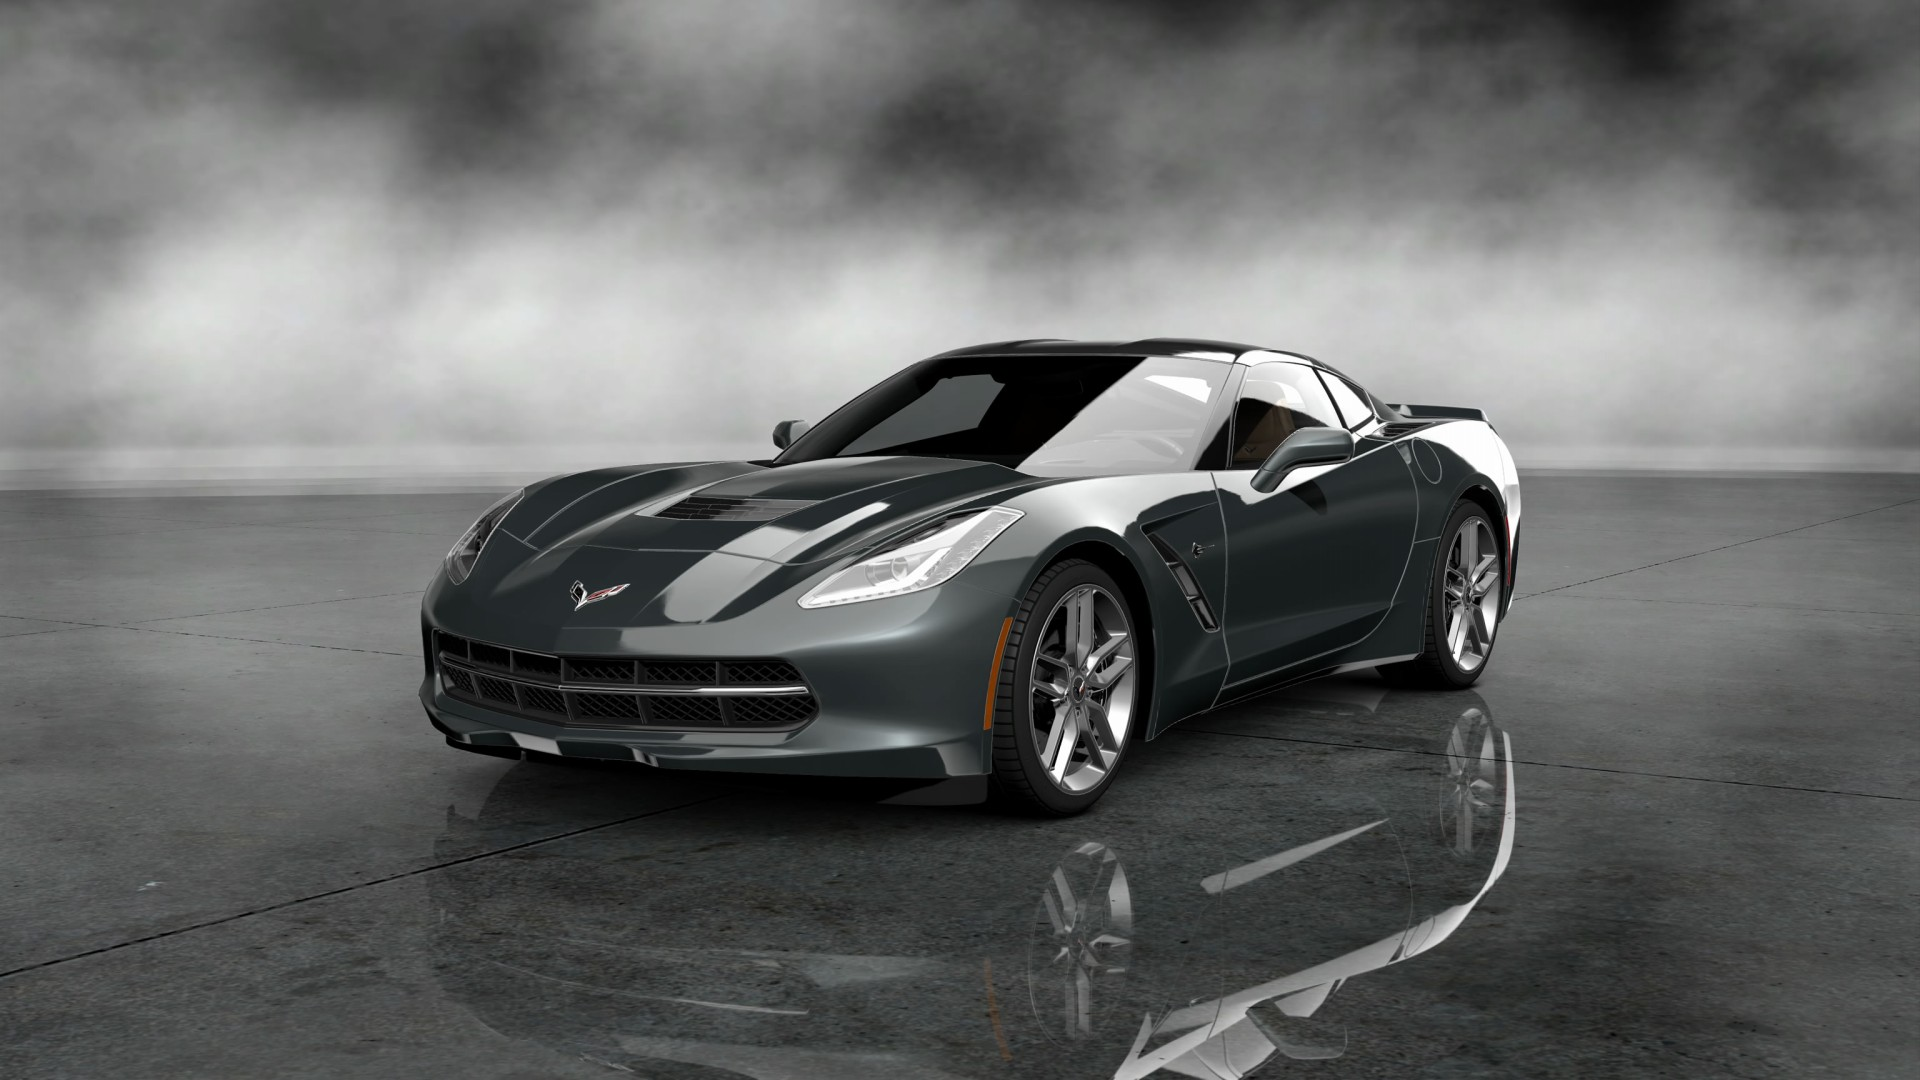 2014 corvette stingray black 2014 Chevrolet Corvette Stingray Black Wallpaper - WALLS-WORLD.COM